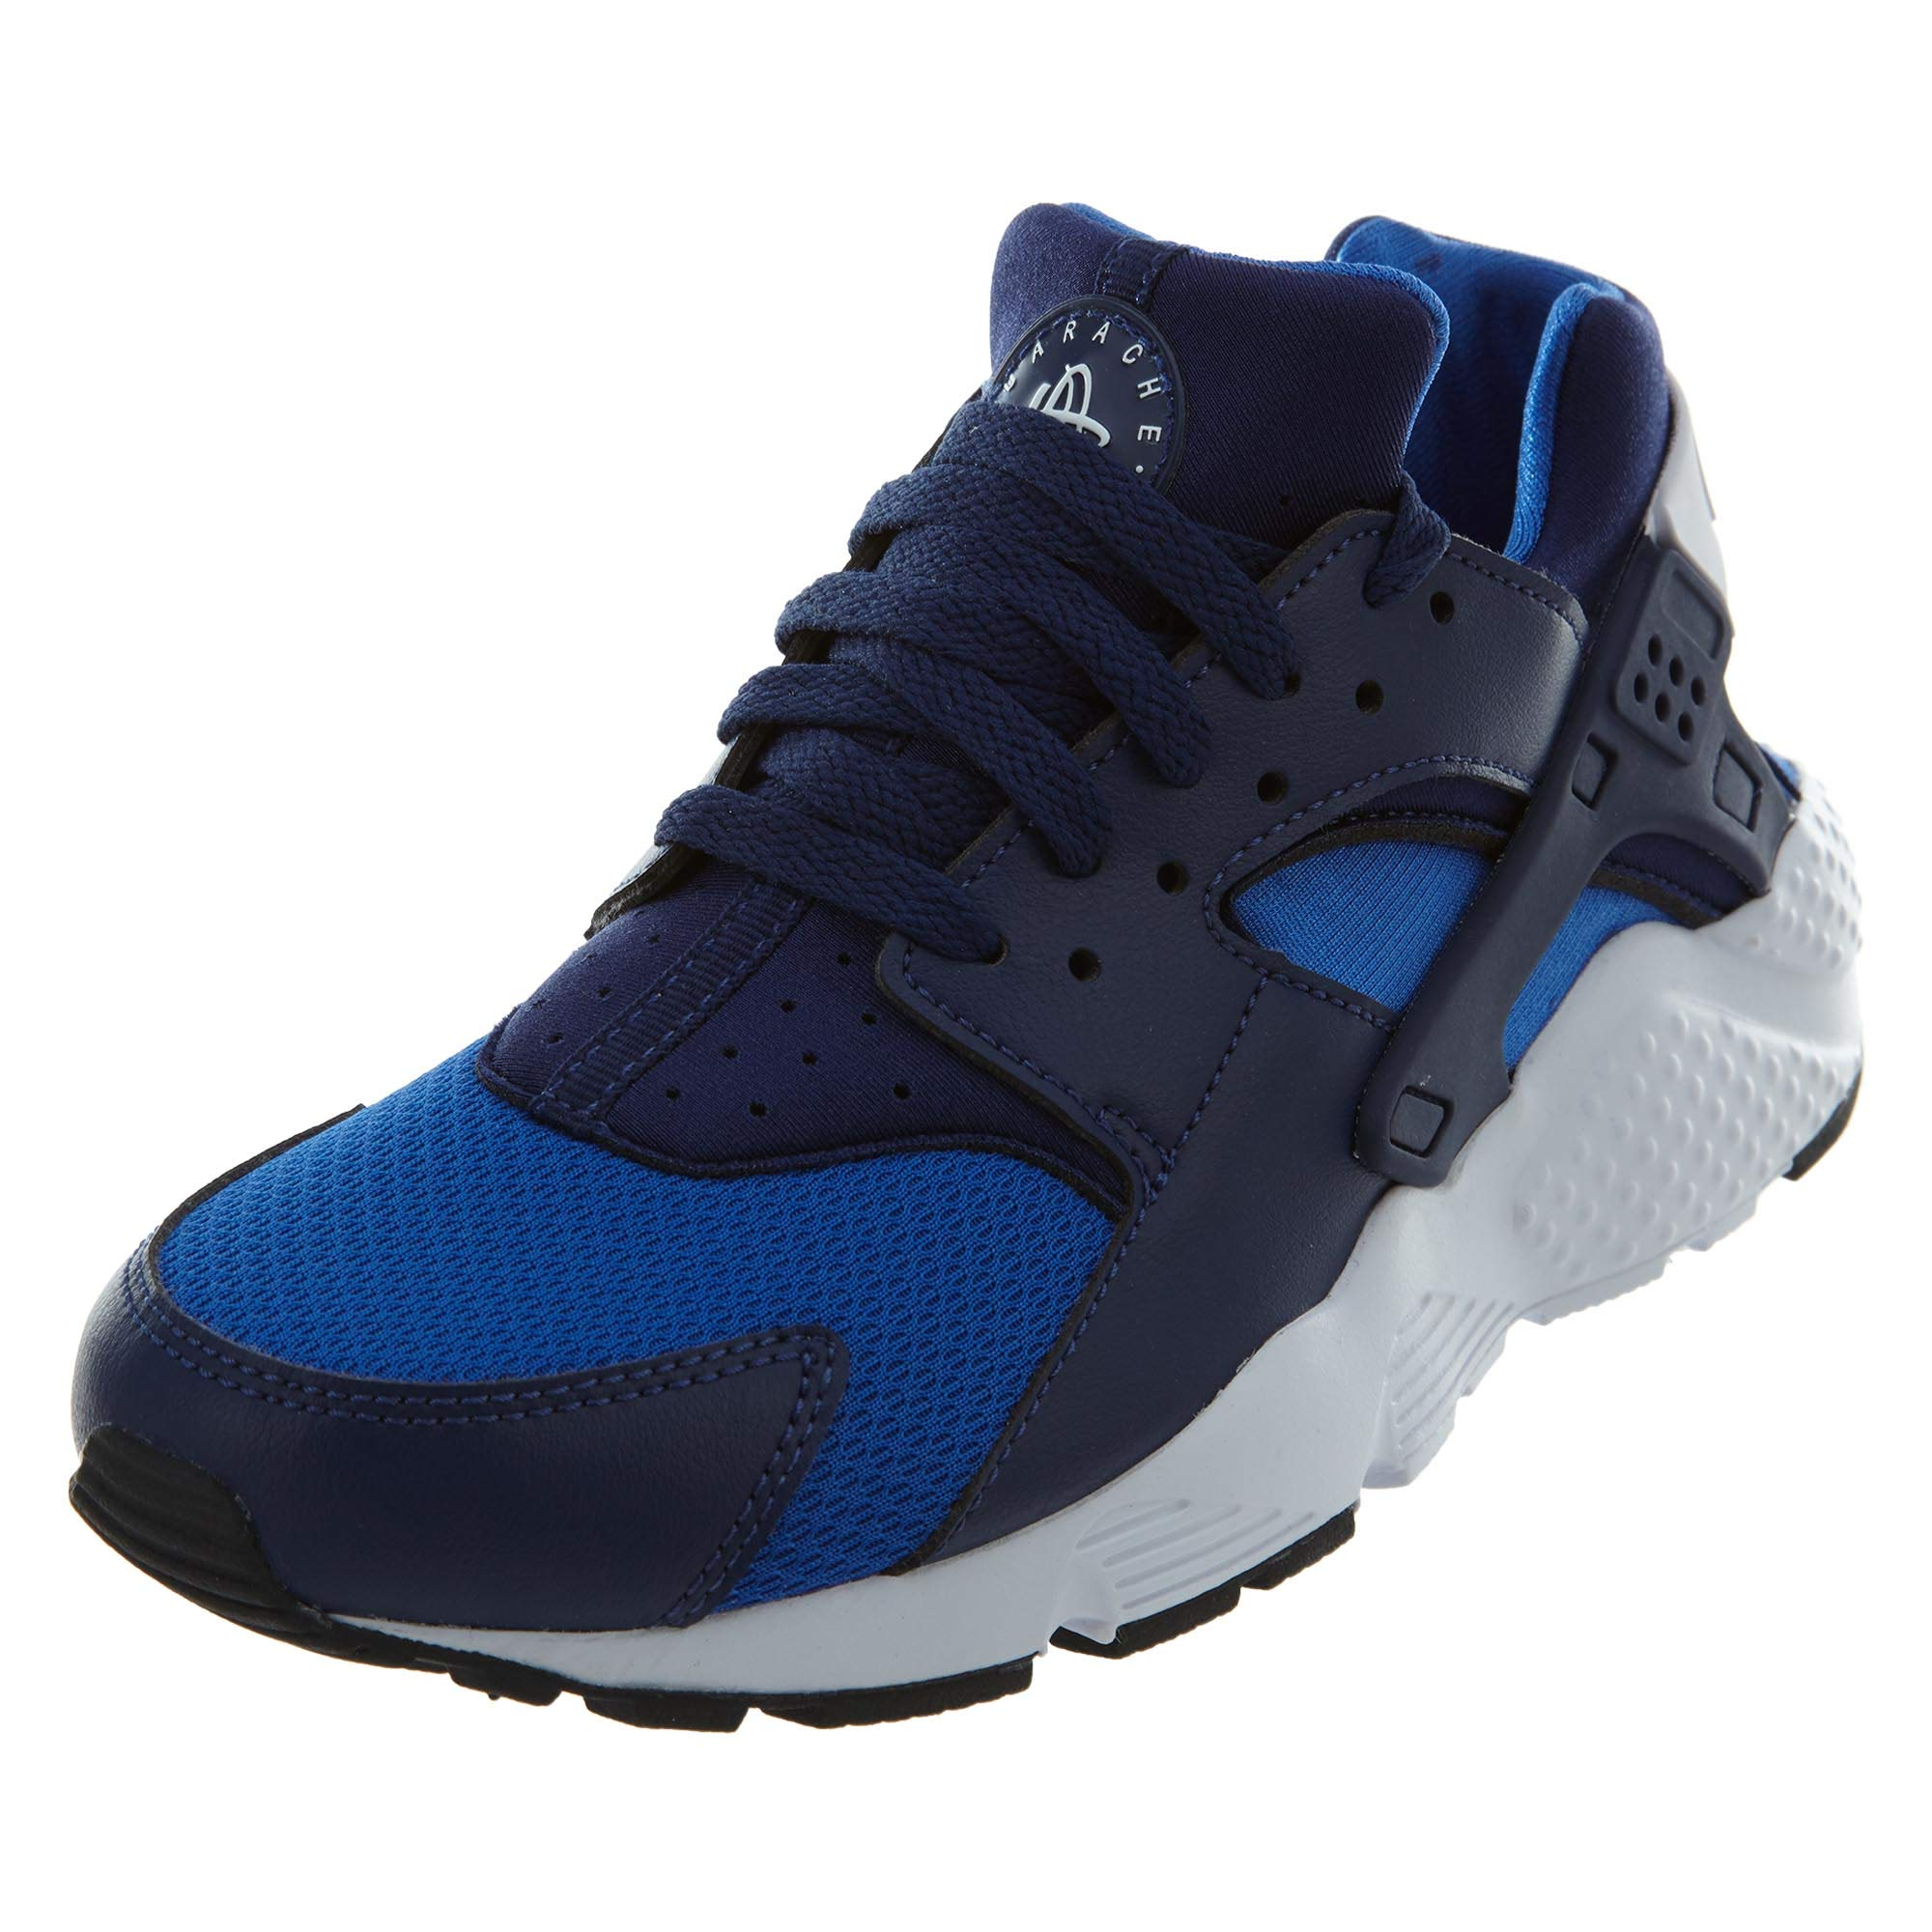 innovative design bca88 f2e75 Galleon - Nike Kids Huarache Run Gs Fashion Sneakers (4.5)